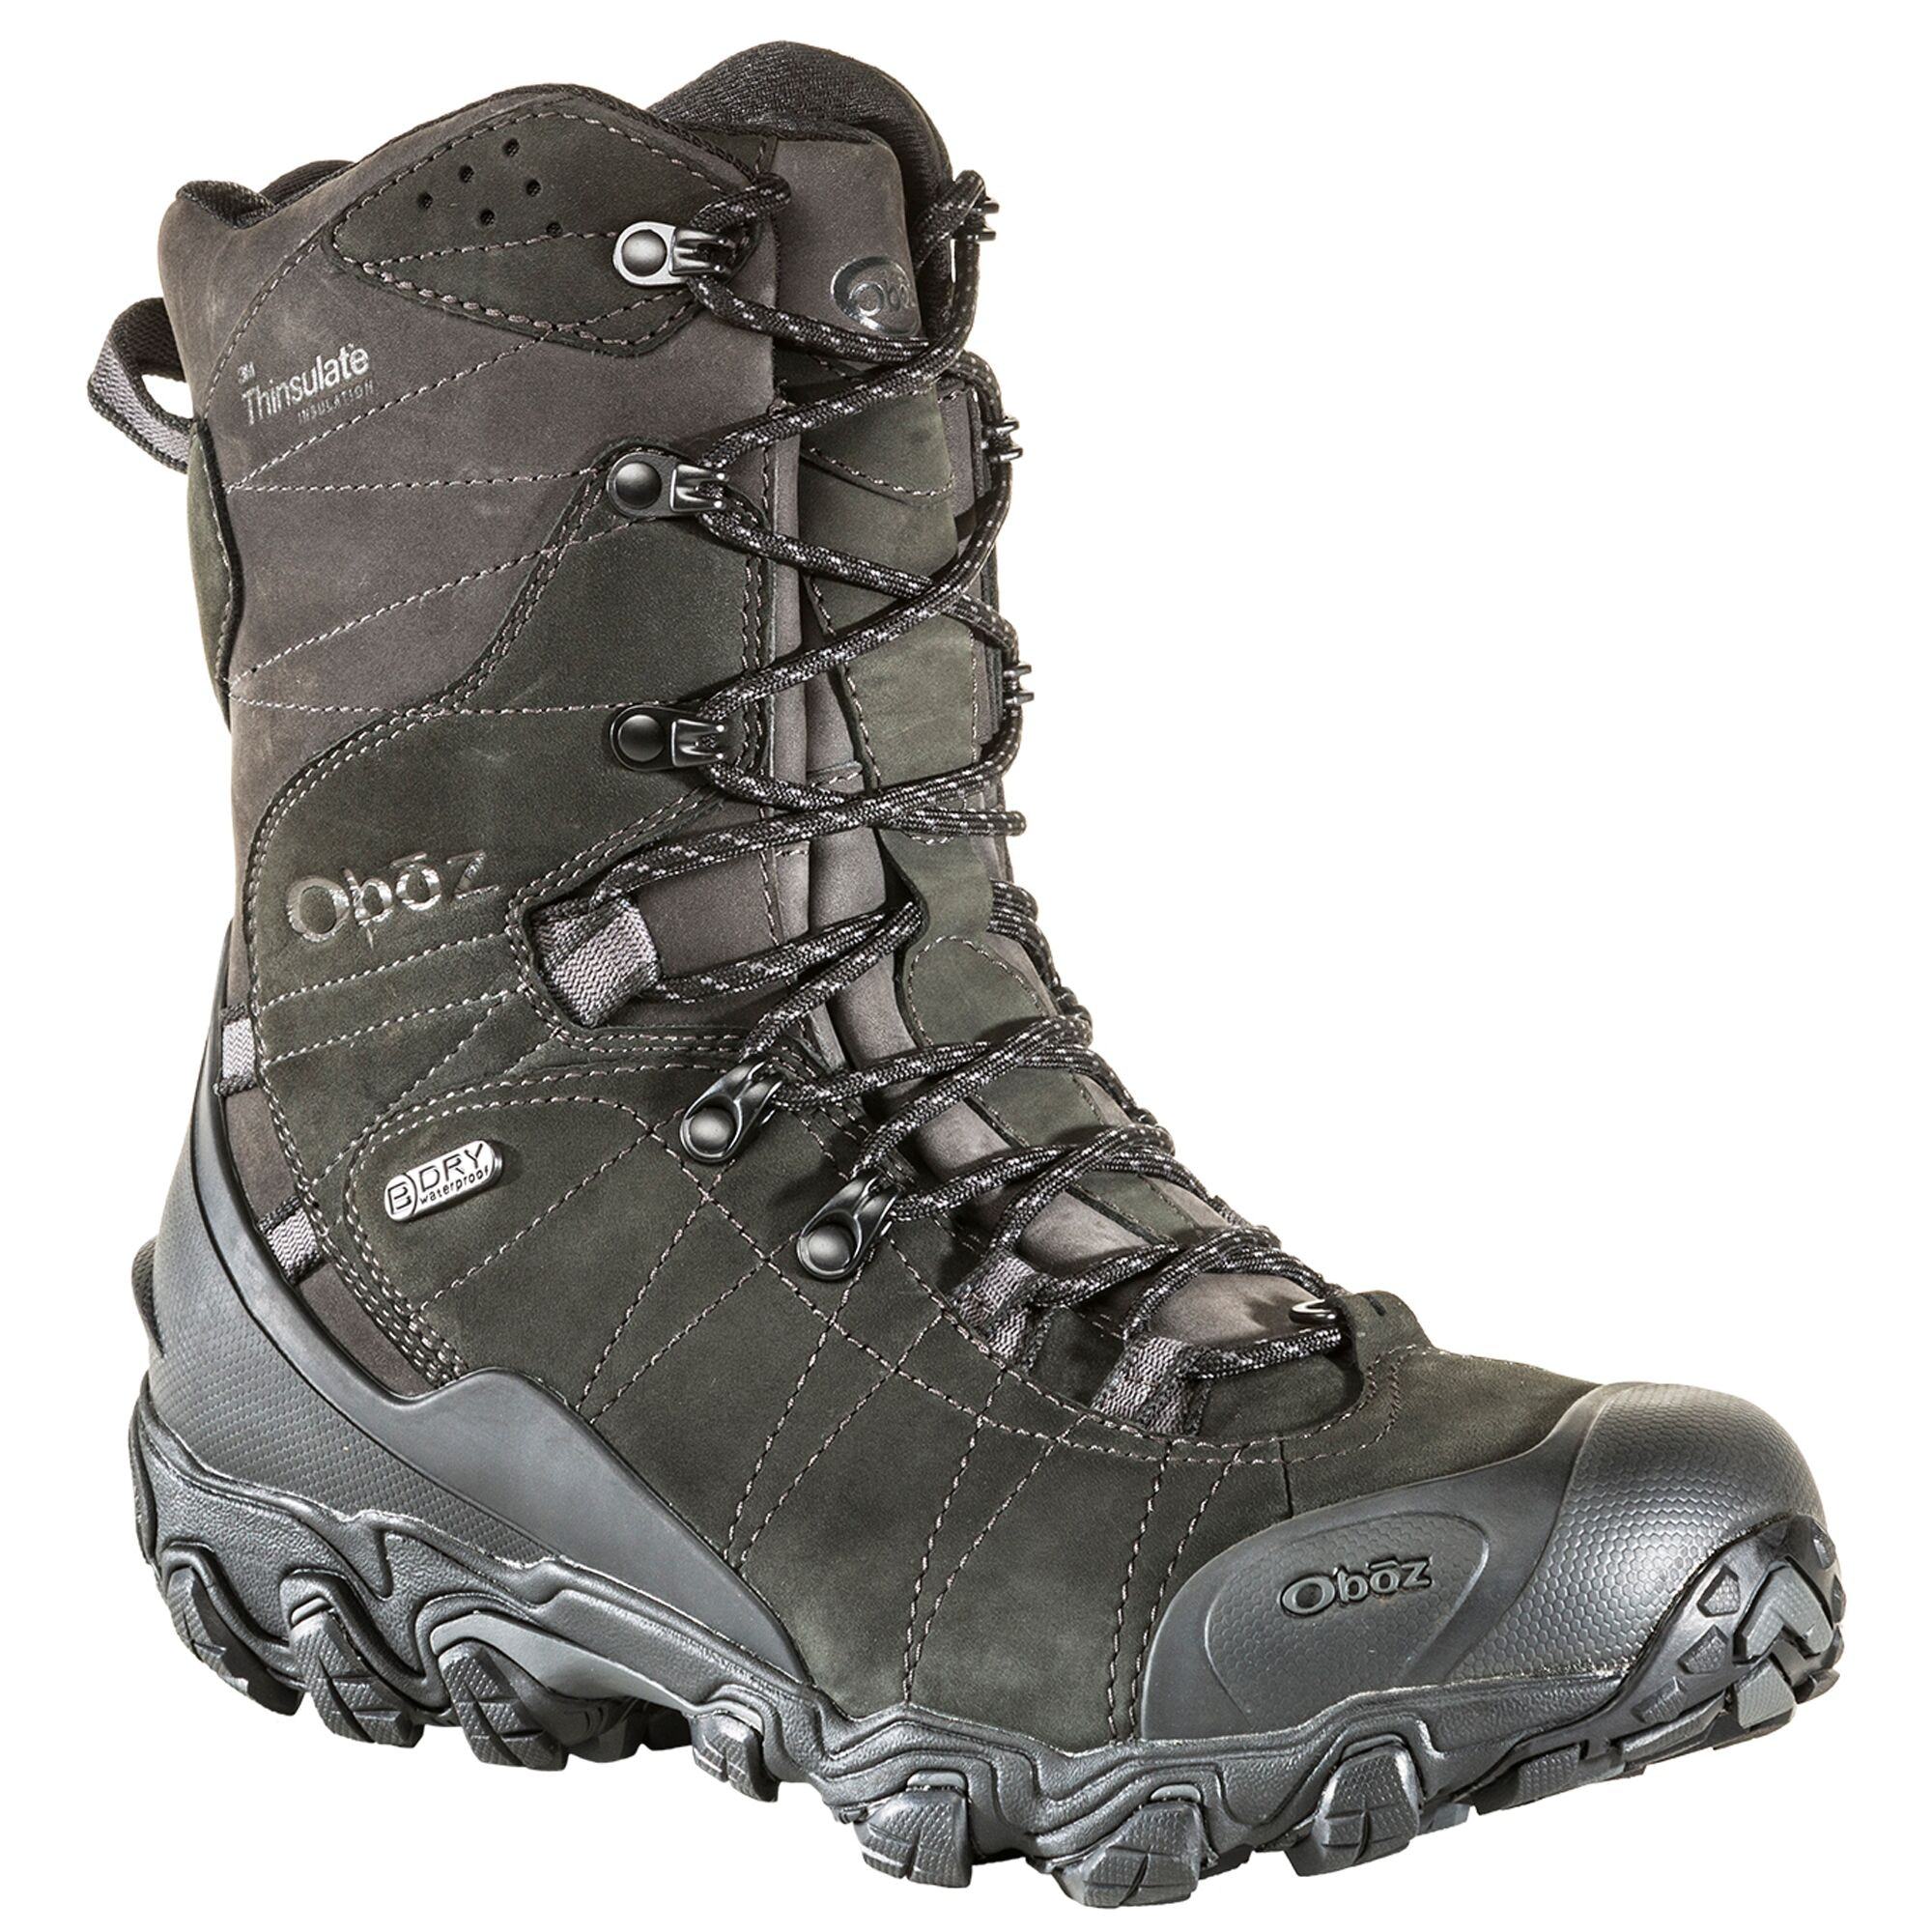 Bridger 10 inch B-DRY Insulated Boots